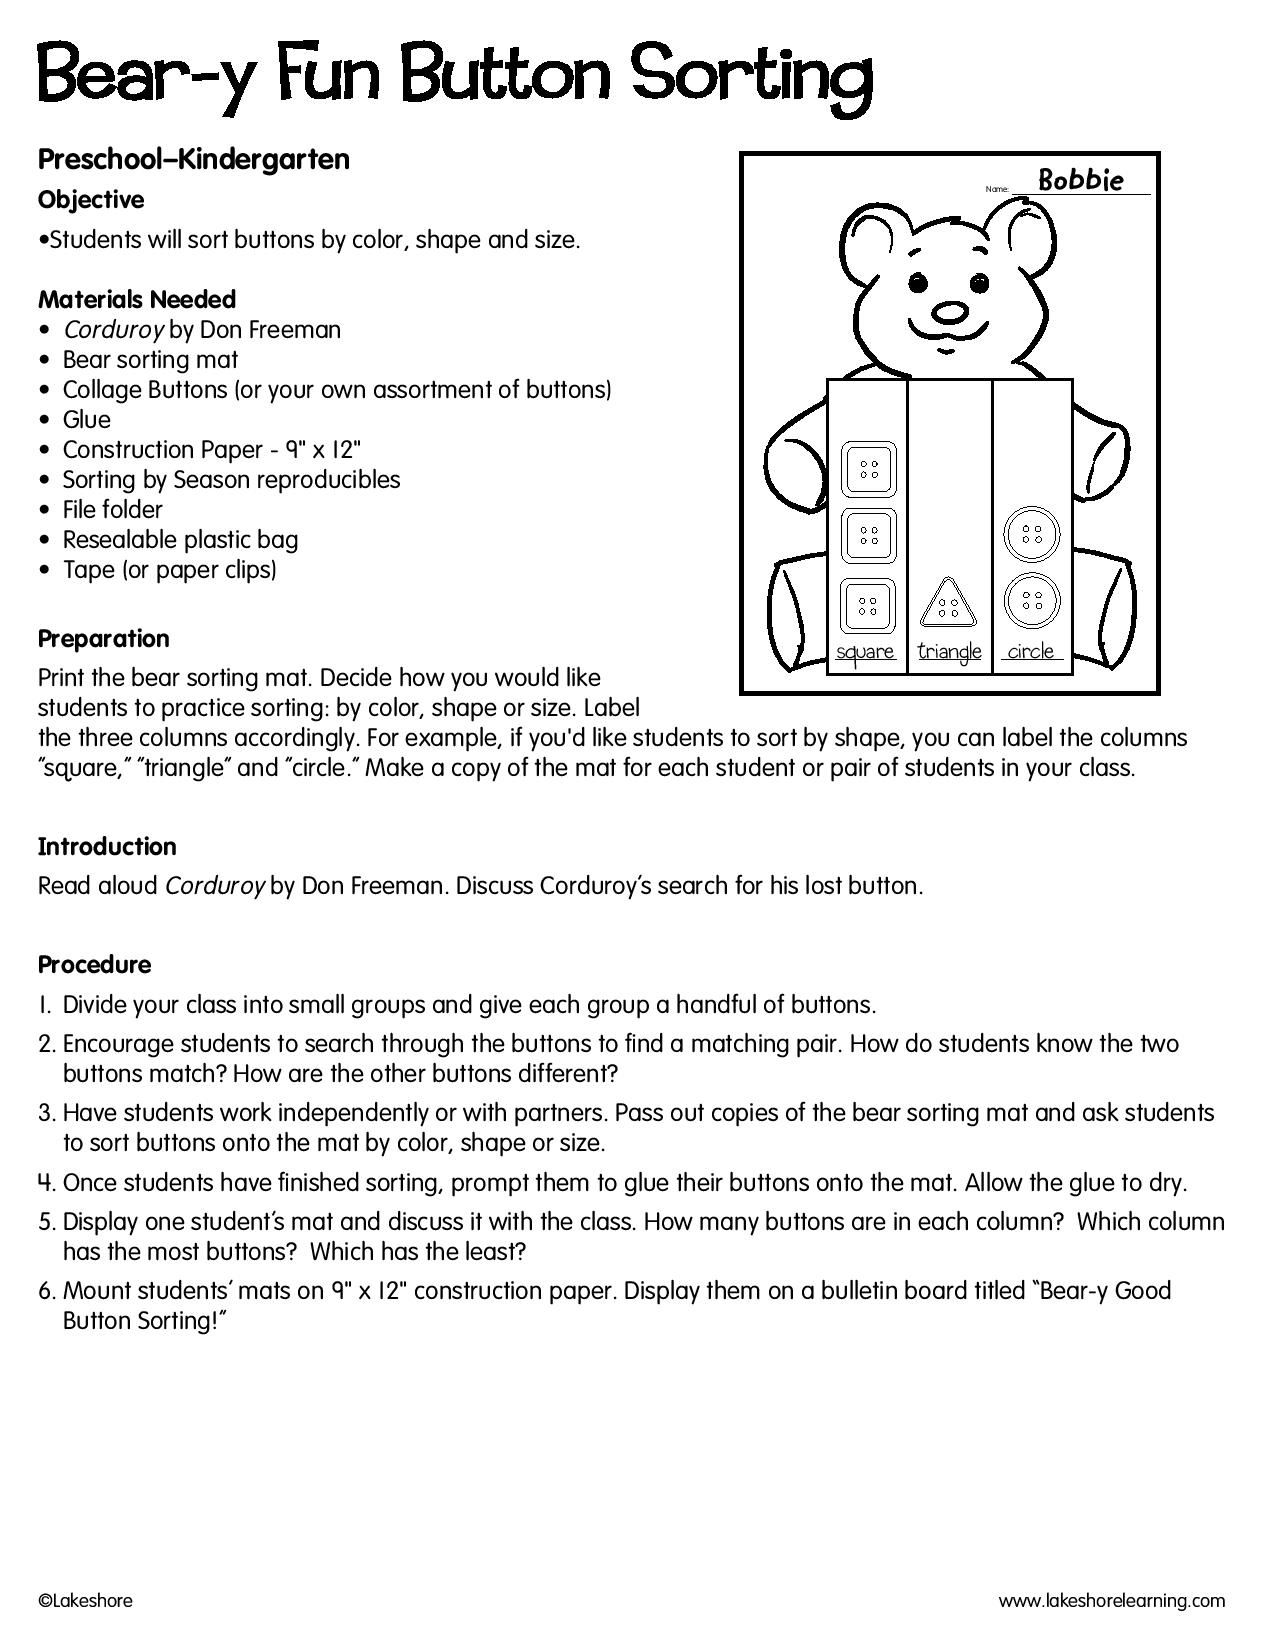 Bear Y Fun Button Sorting Lessonplan